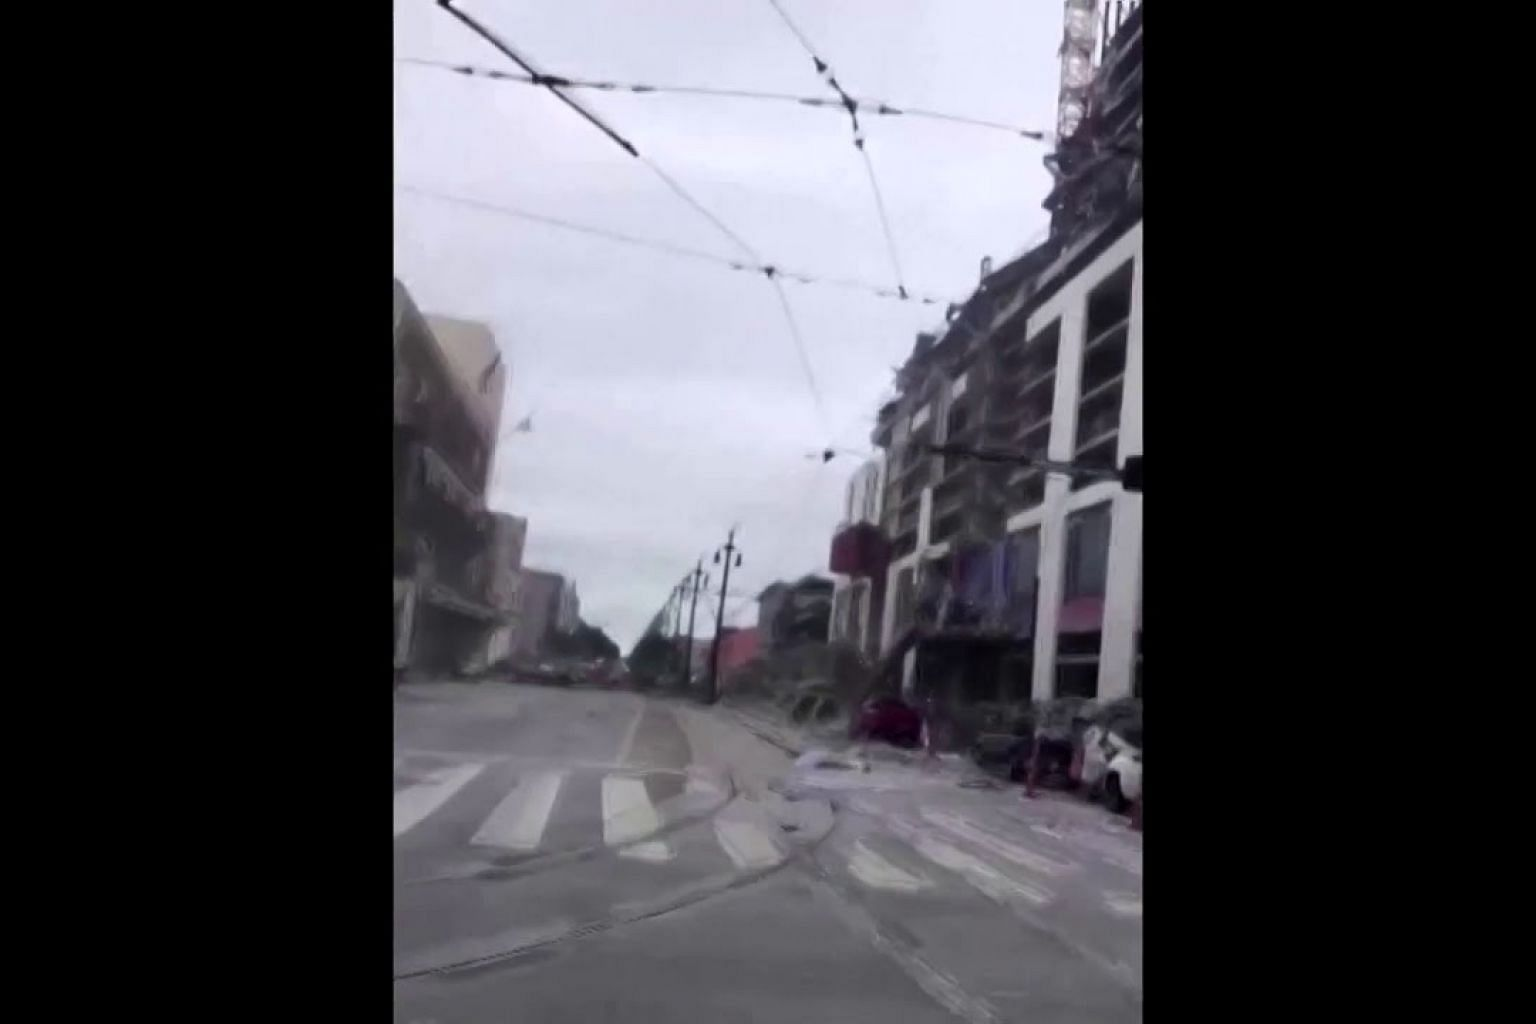 Video captures Hard Rock Hotel's collapse, ensuing chaos